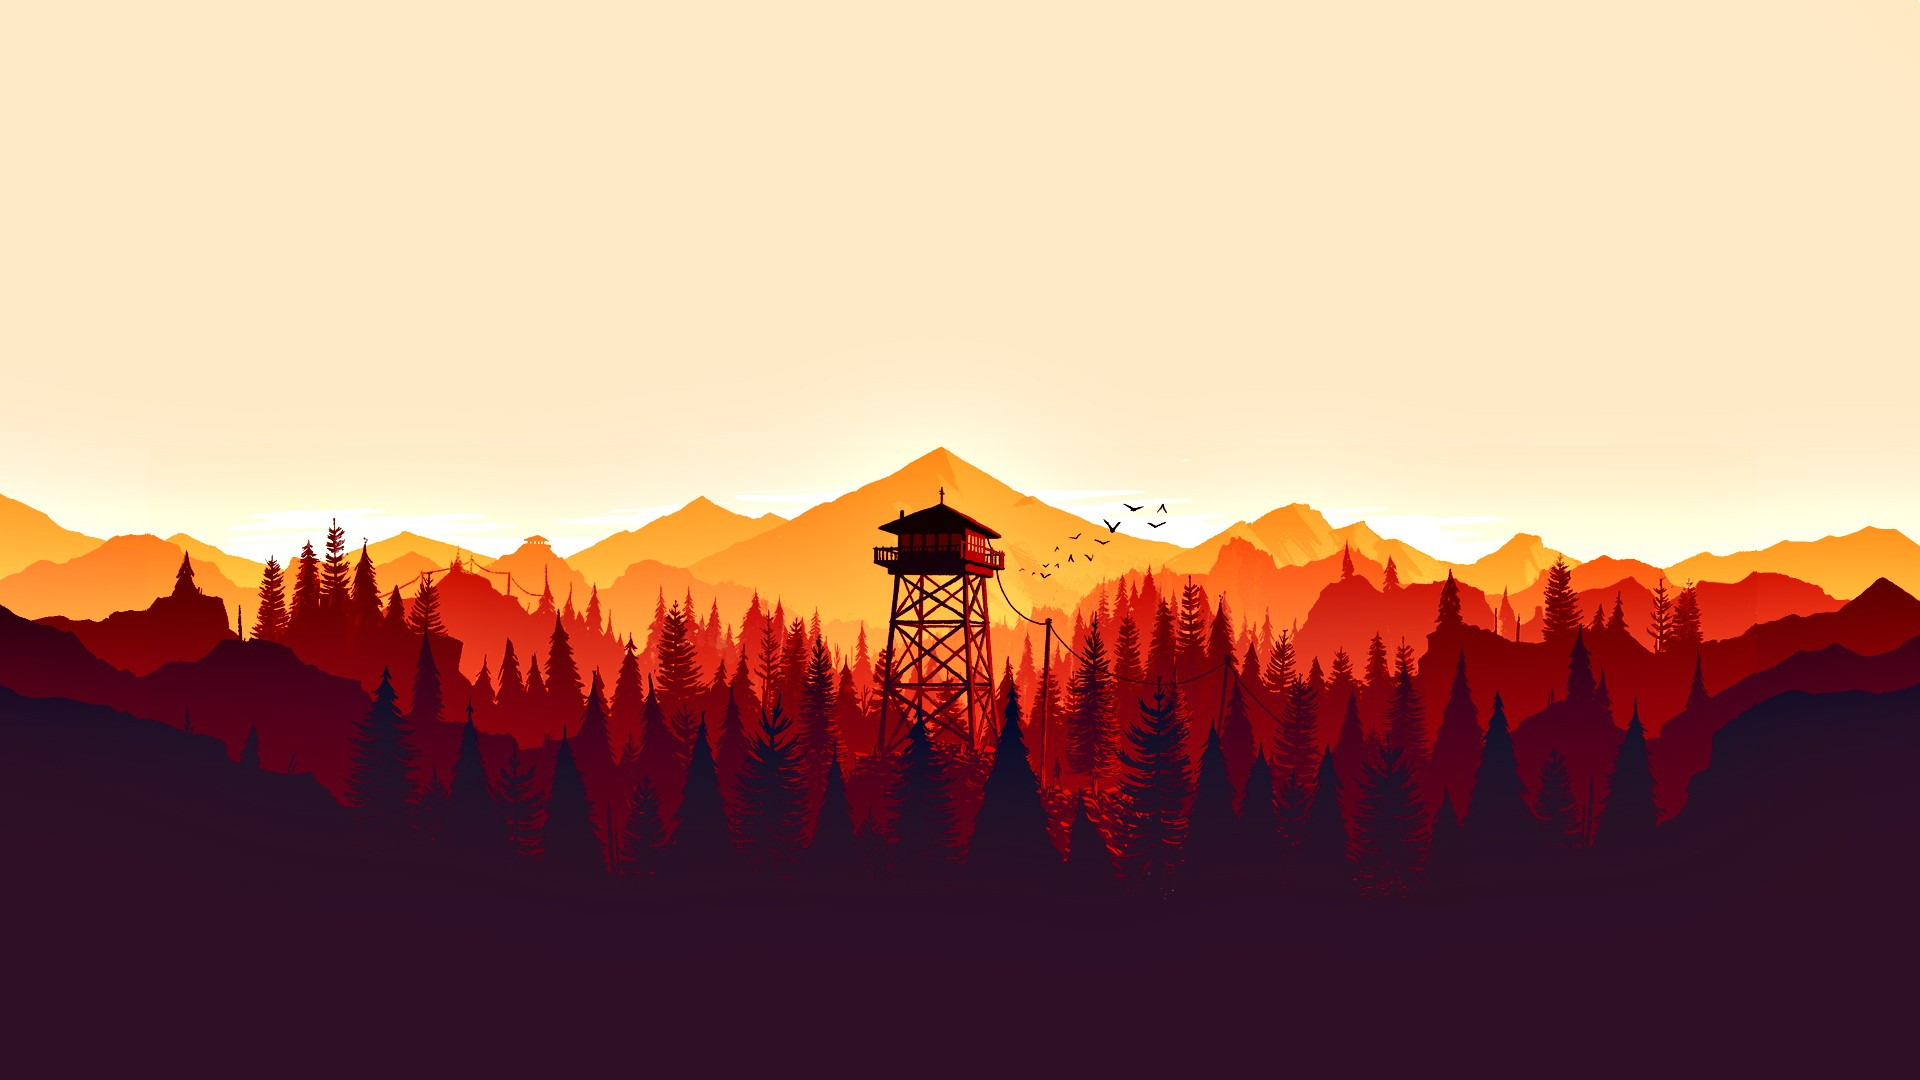 Firewatch Wallpaper ·① Download Free Amazing HD Wallpapers